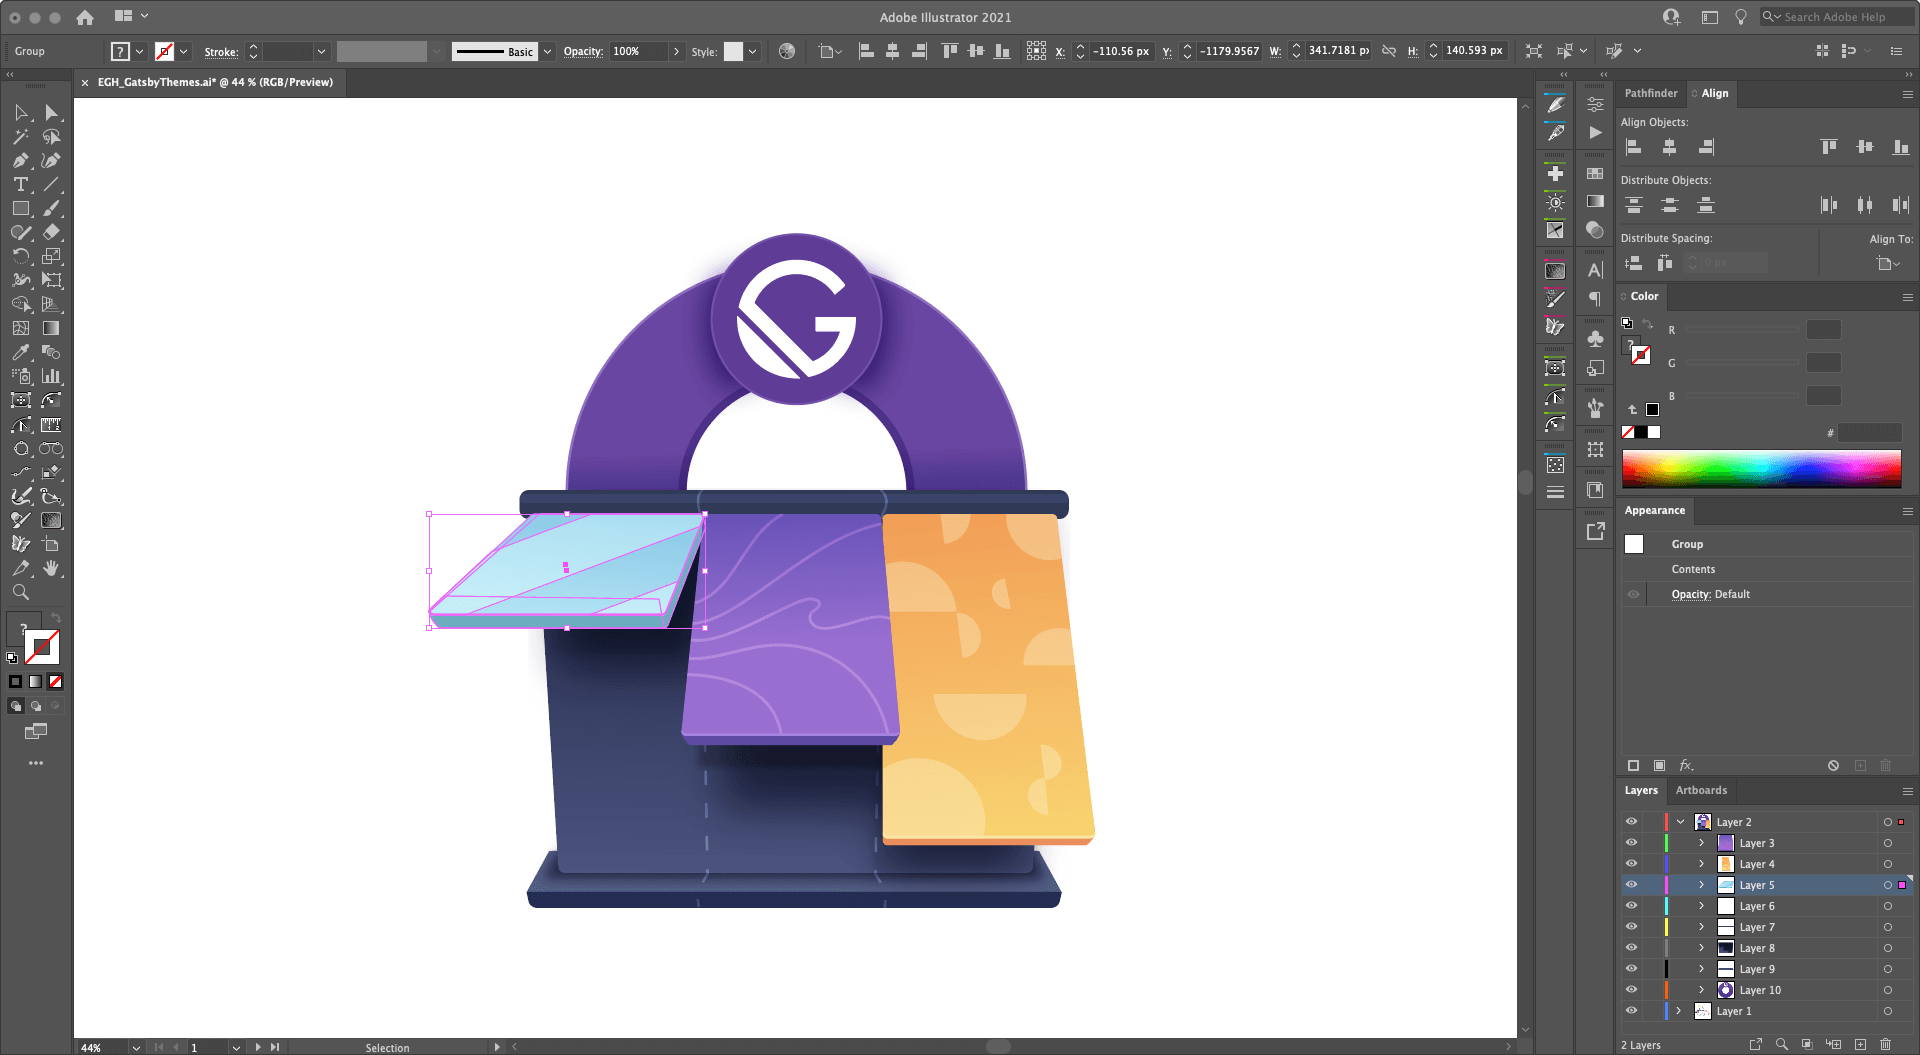 A screenshot of my Adobe Illustrator setup with one of my illustrations on the canvas